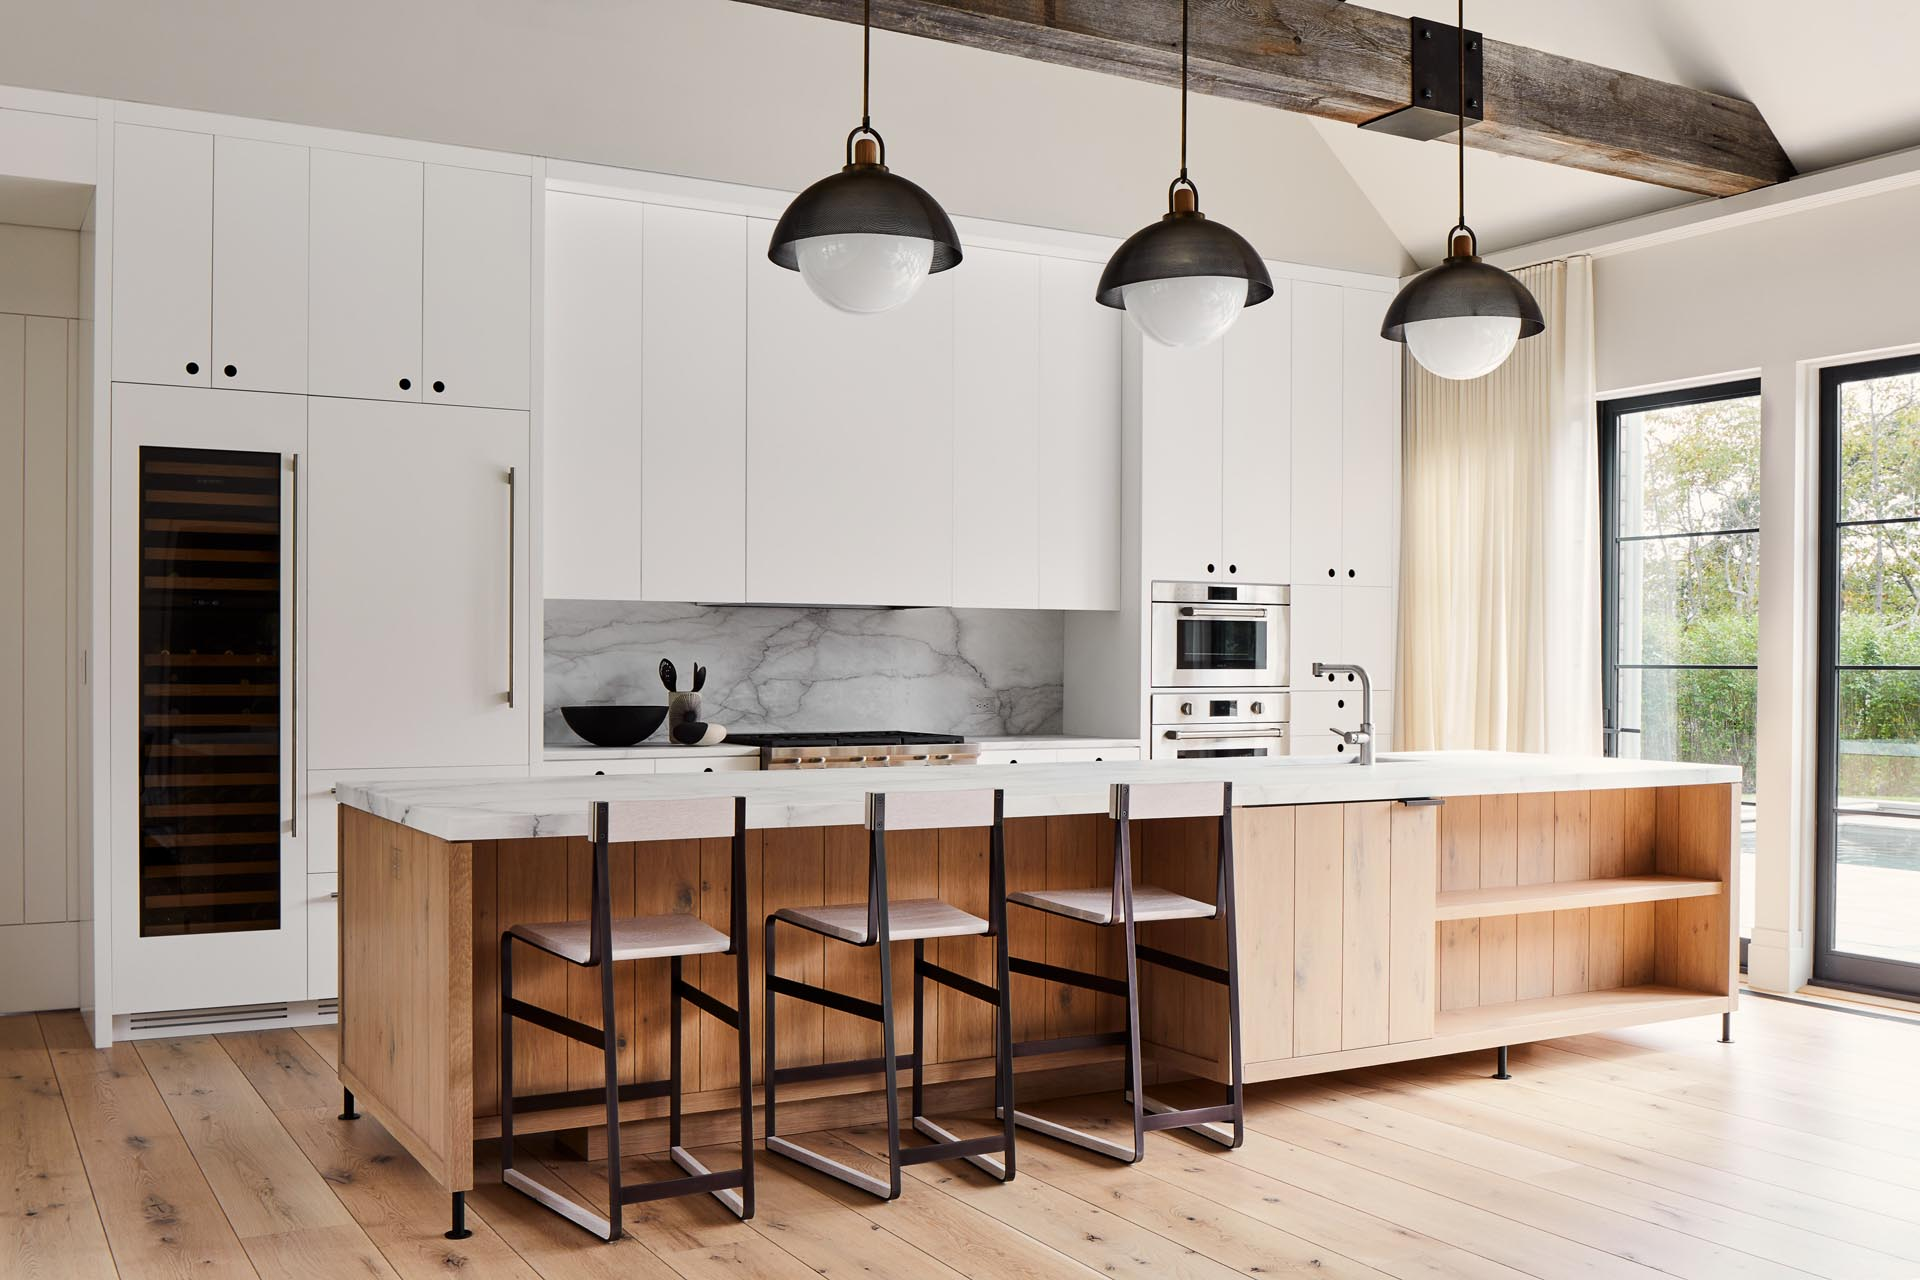 In this modern farmhouse kitchen kitchen, the exhaust fan is concealed within a fixed panel which is flanked by white cabinets. For the cabinets left and right of the stove, the doors hang down below the cabinets so they can be opened by pulling the bottoms of the cabinet doors.